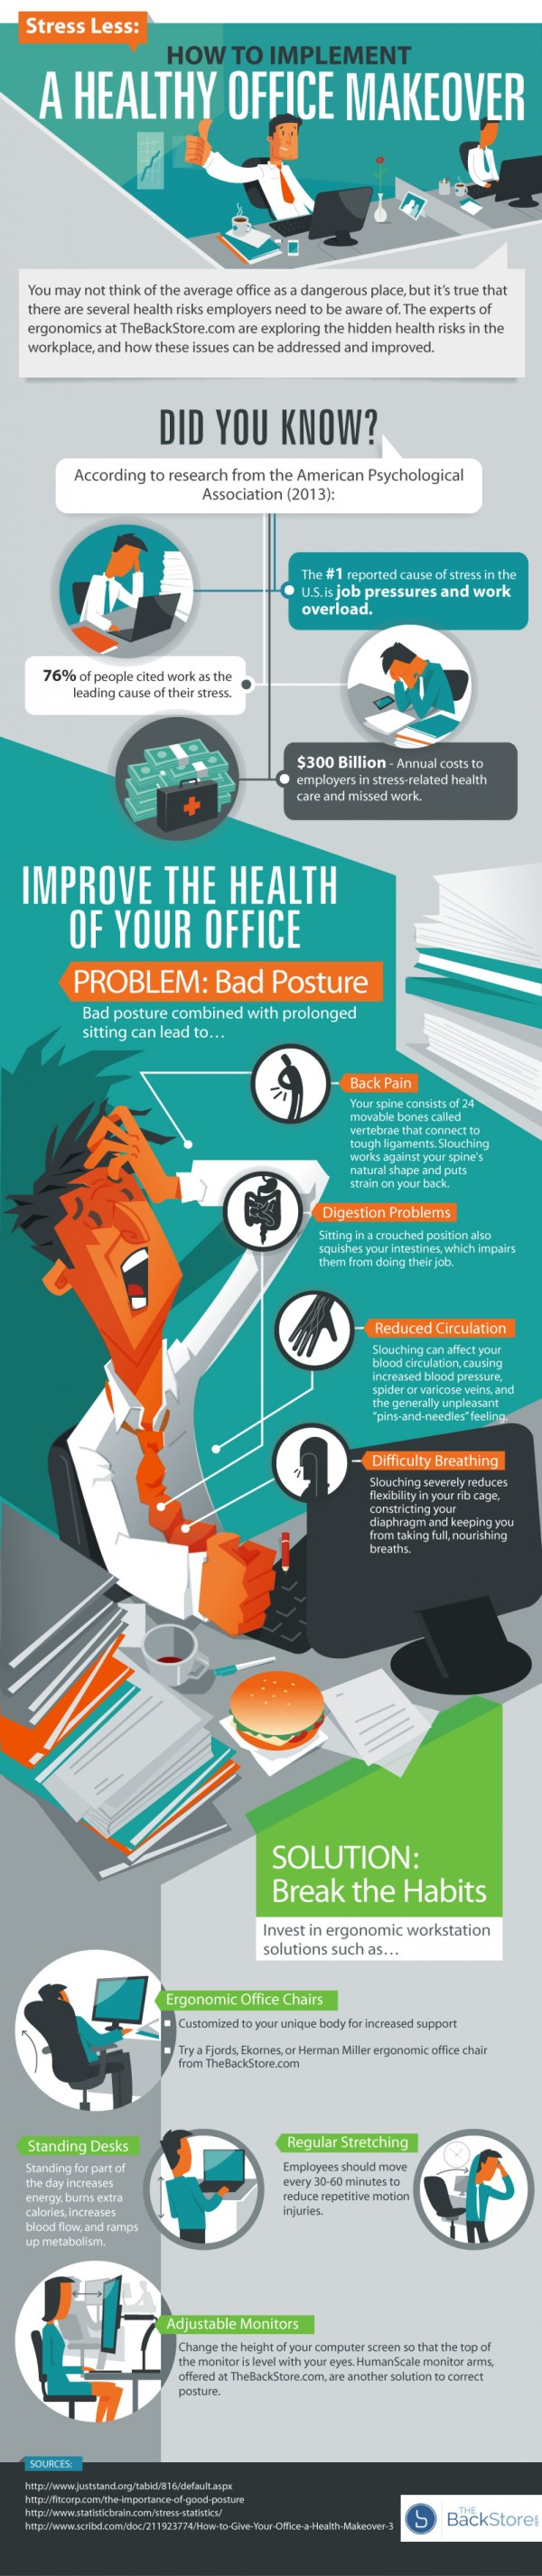 how-to-implement-a-healthy-office-makeover_5384d7ffdf466_w1500